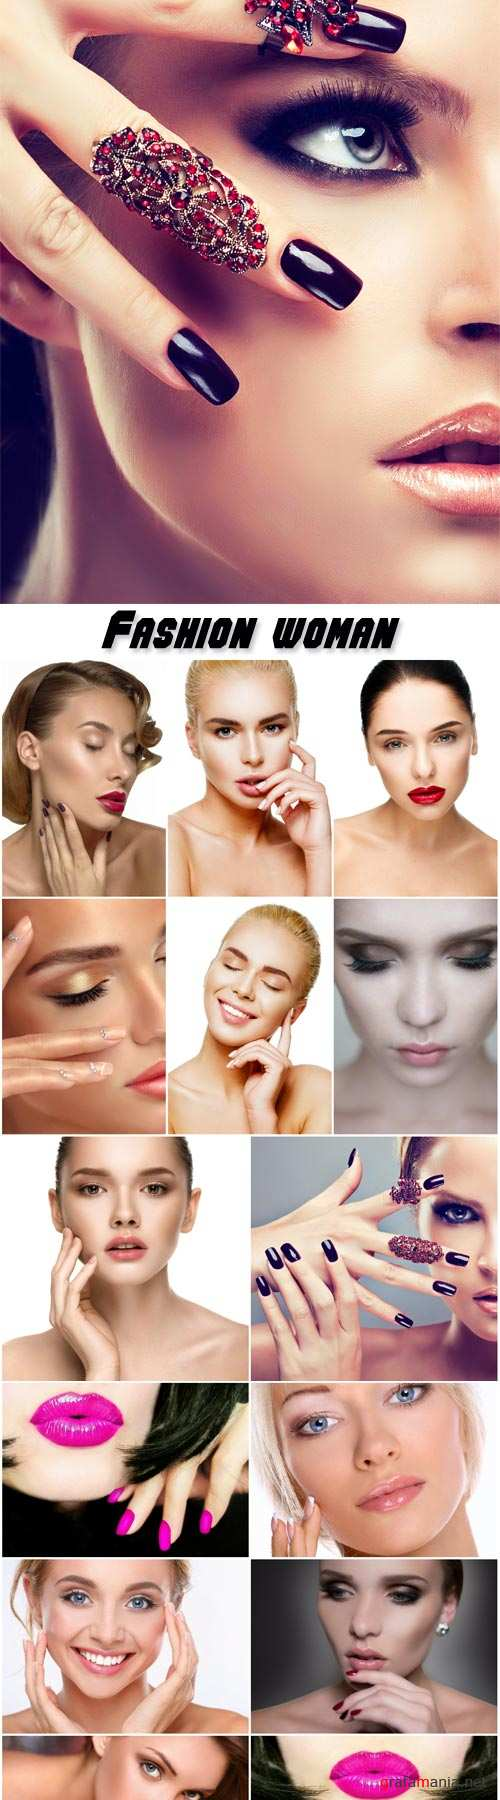 Luxury fashion woman, manicure nail, cosmetics and makeup